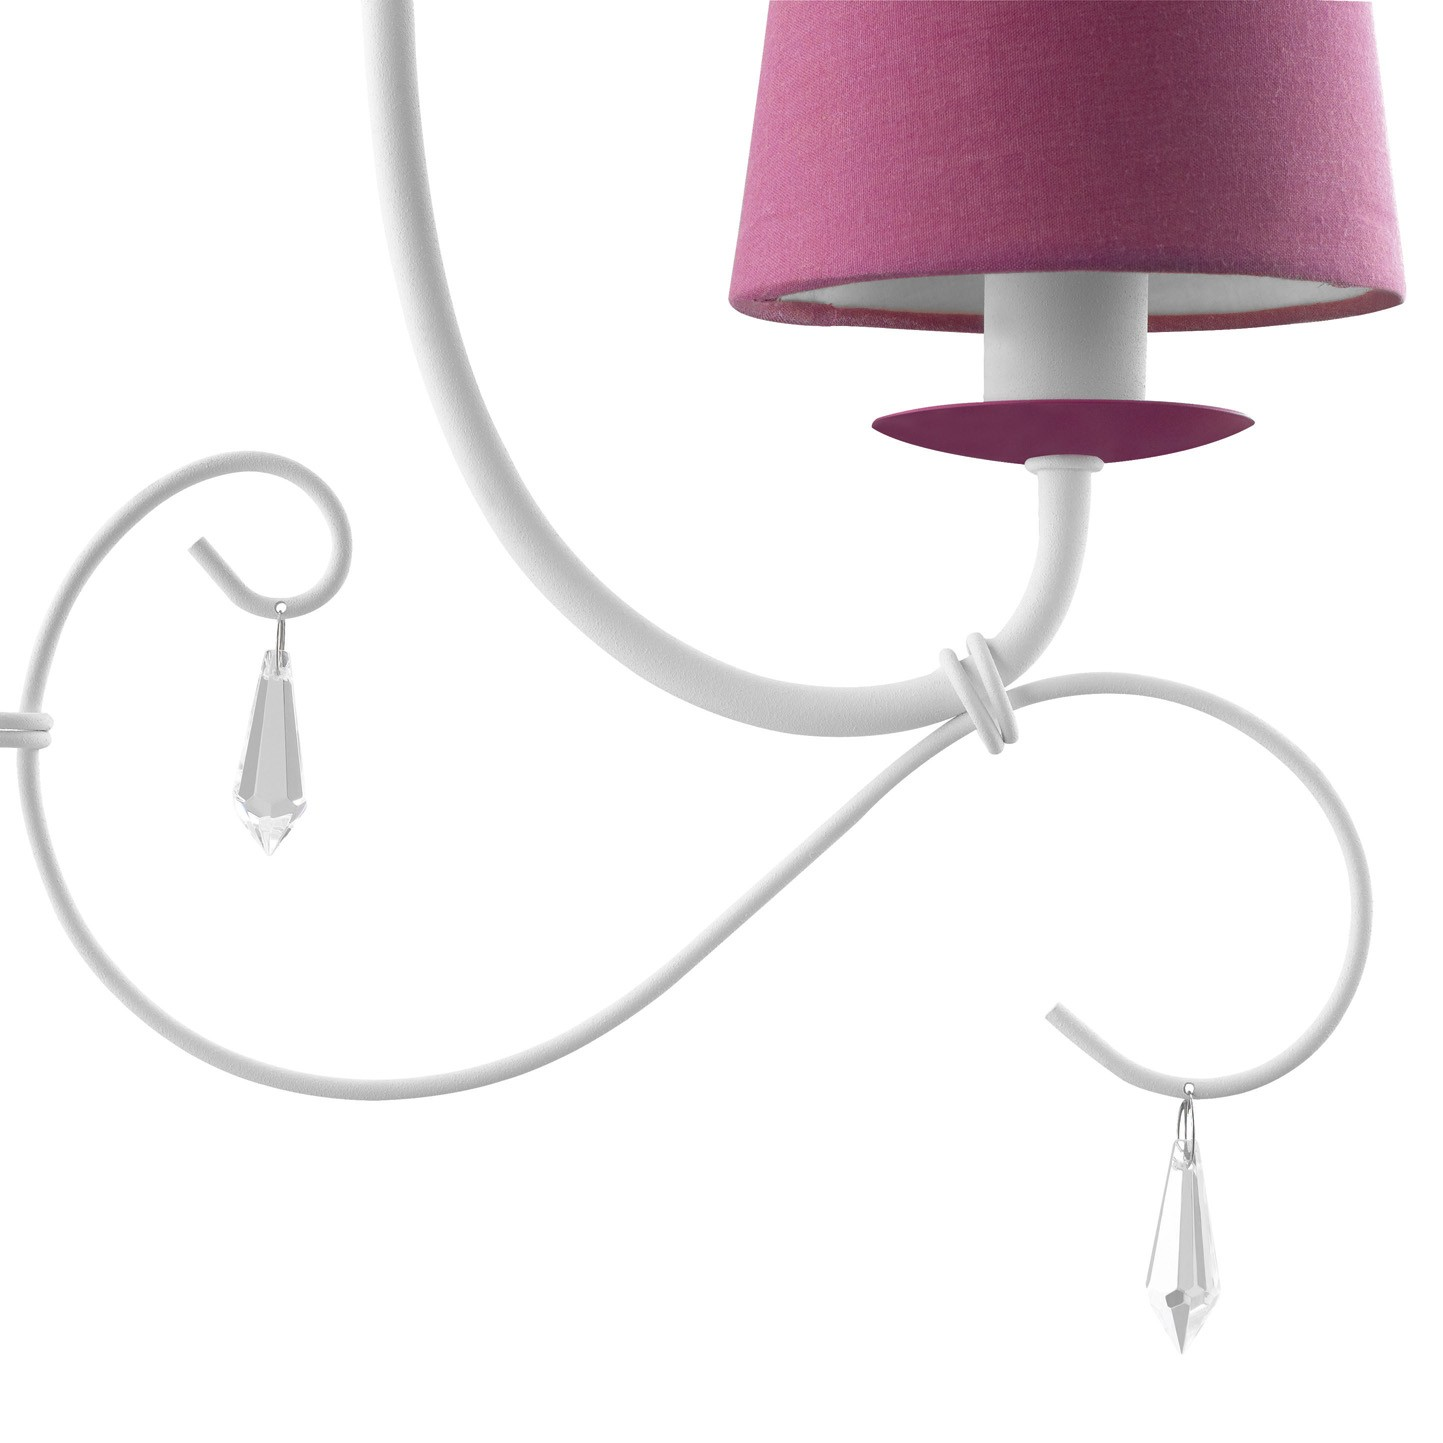 Home » myKidsRoom Princess 415942816 roze kinderlamp Philips